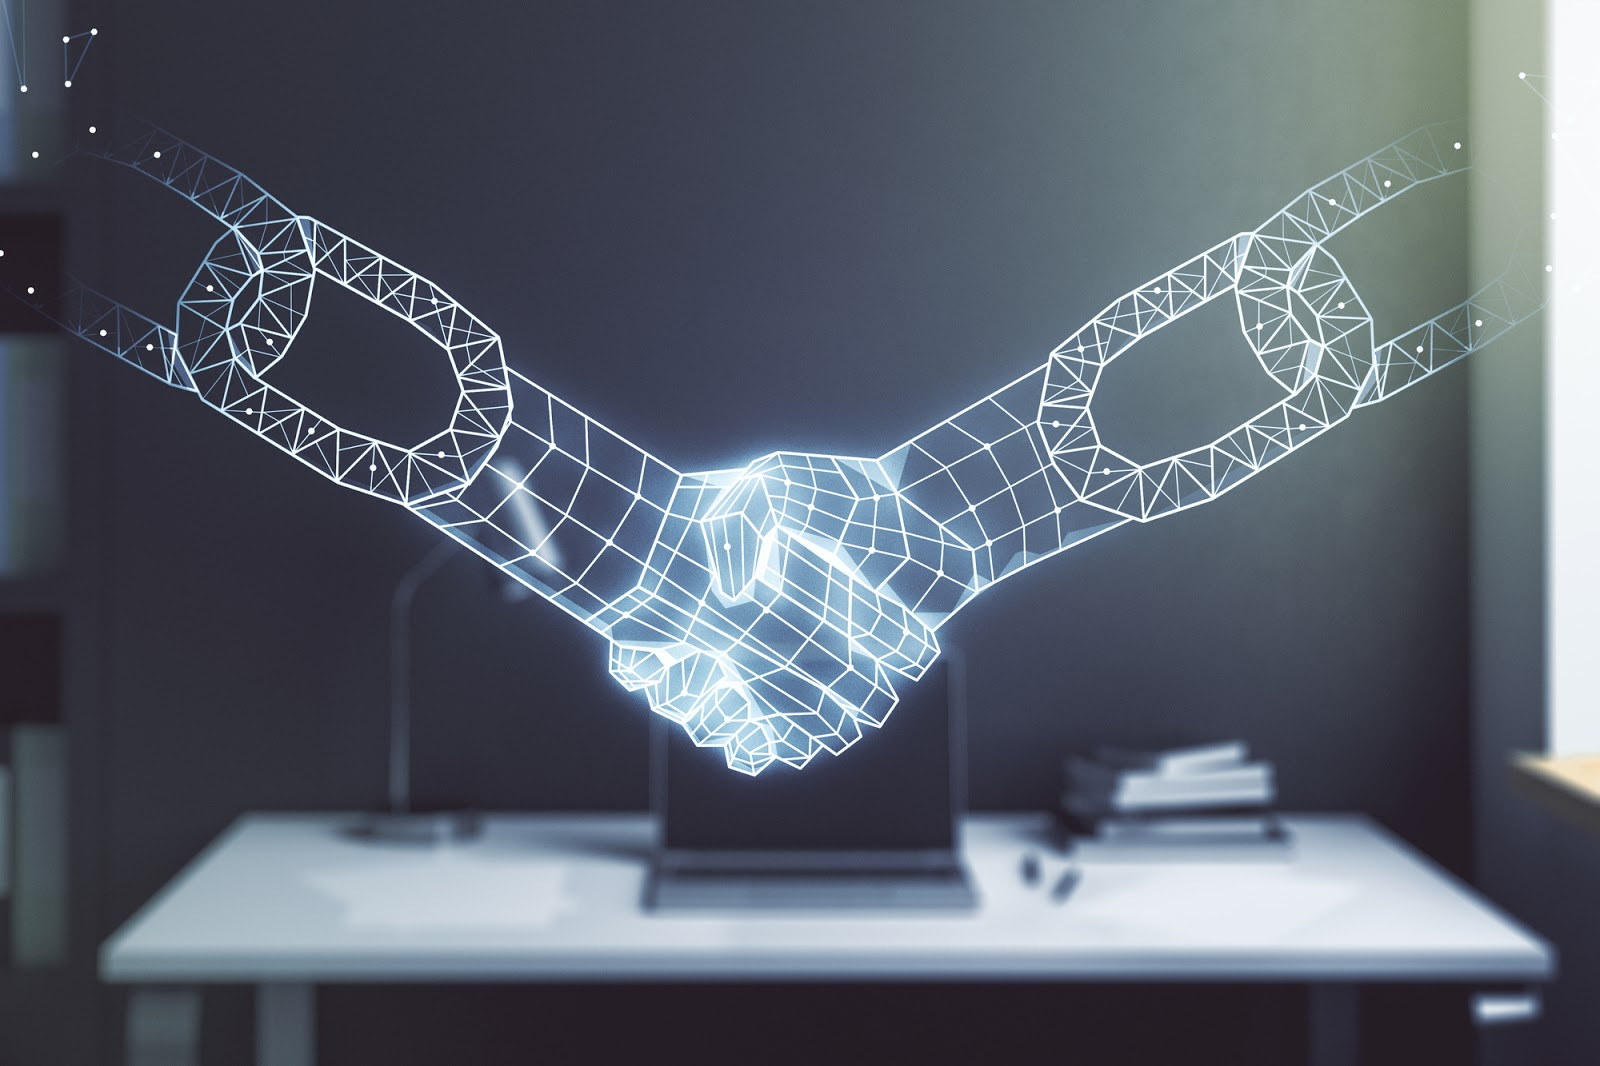 Harmony & Terra Join Forces To Focus On Widespread Decentralized Finance Adoption